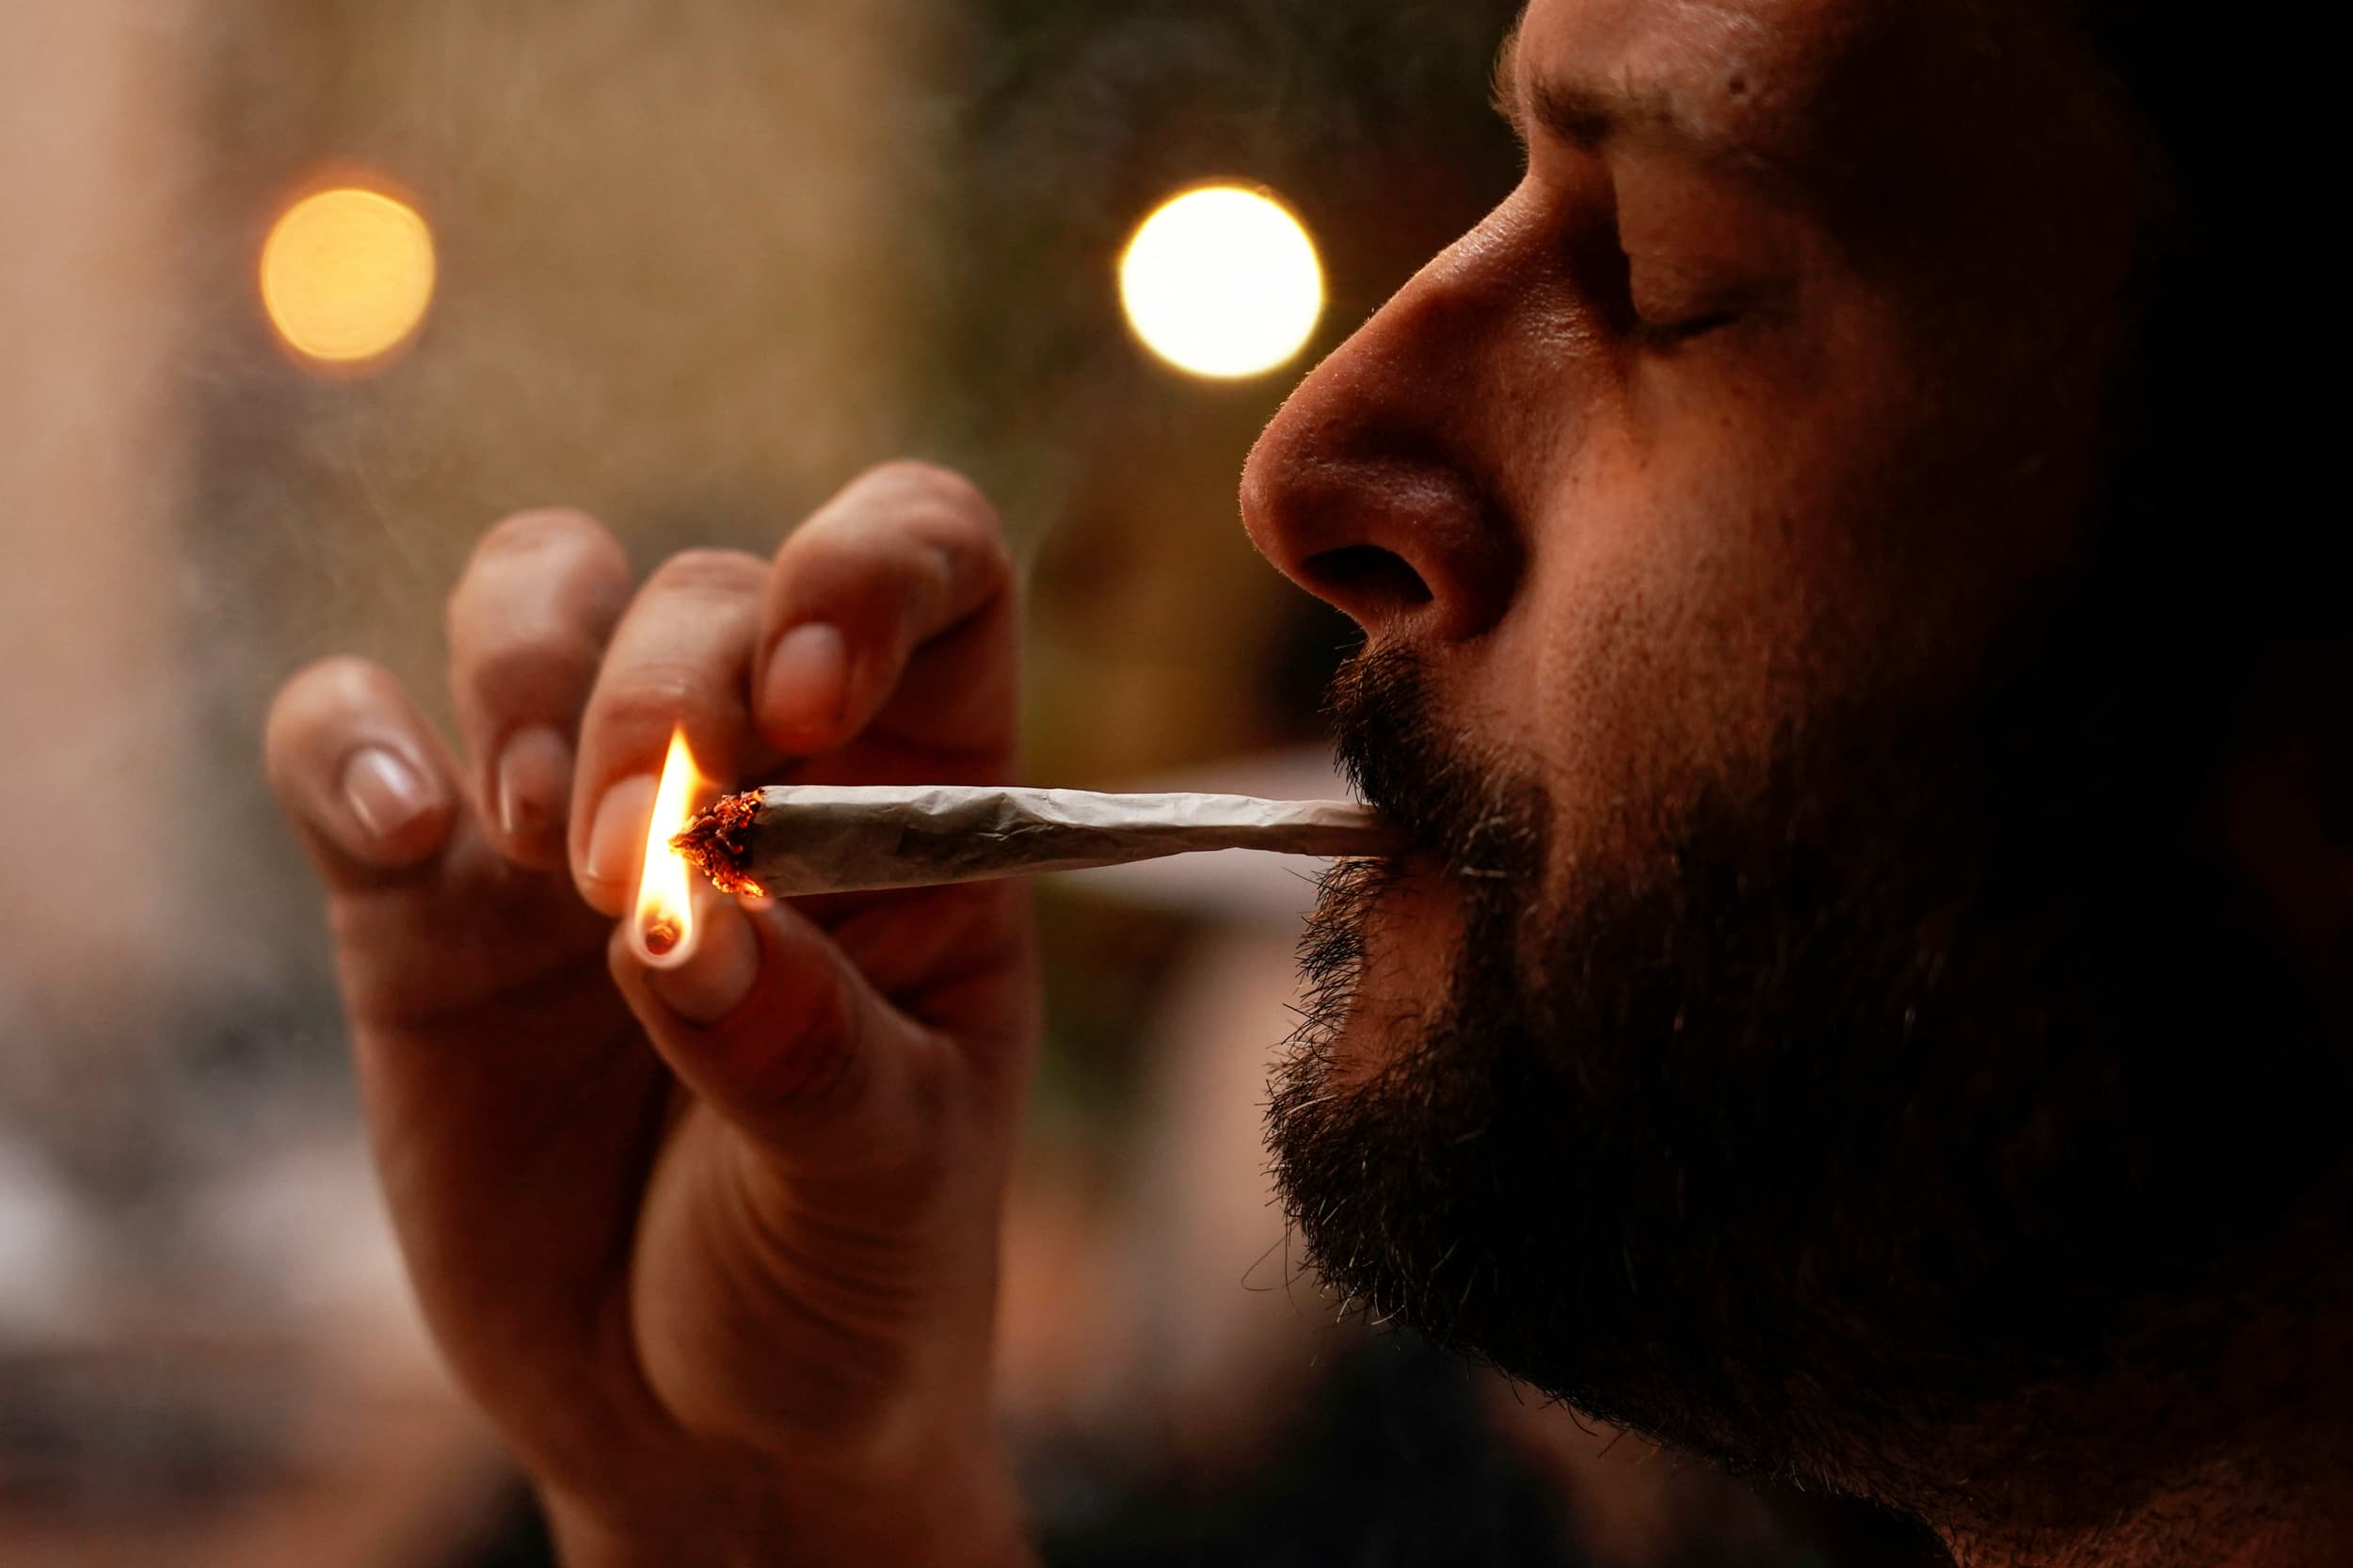 Virginia gets close to legalizing recreational weed as other states eye cannabis tax windfalls